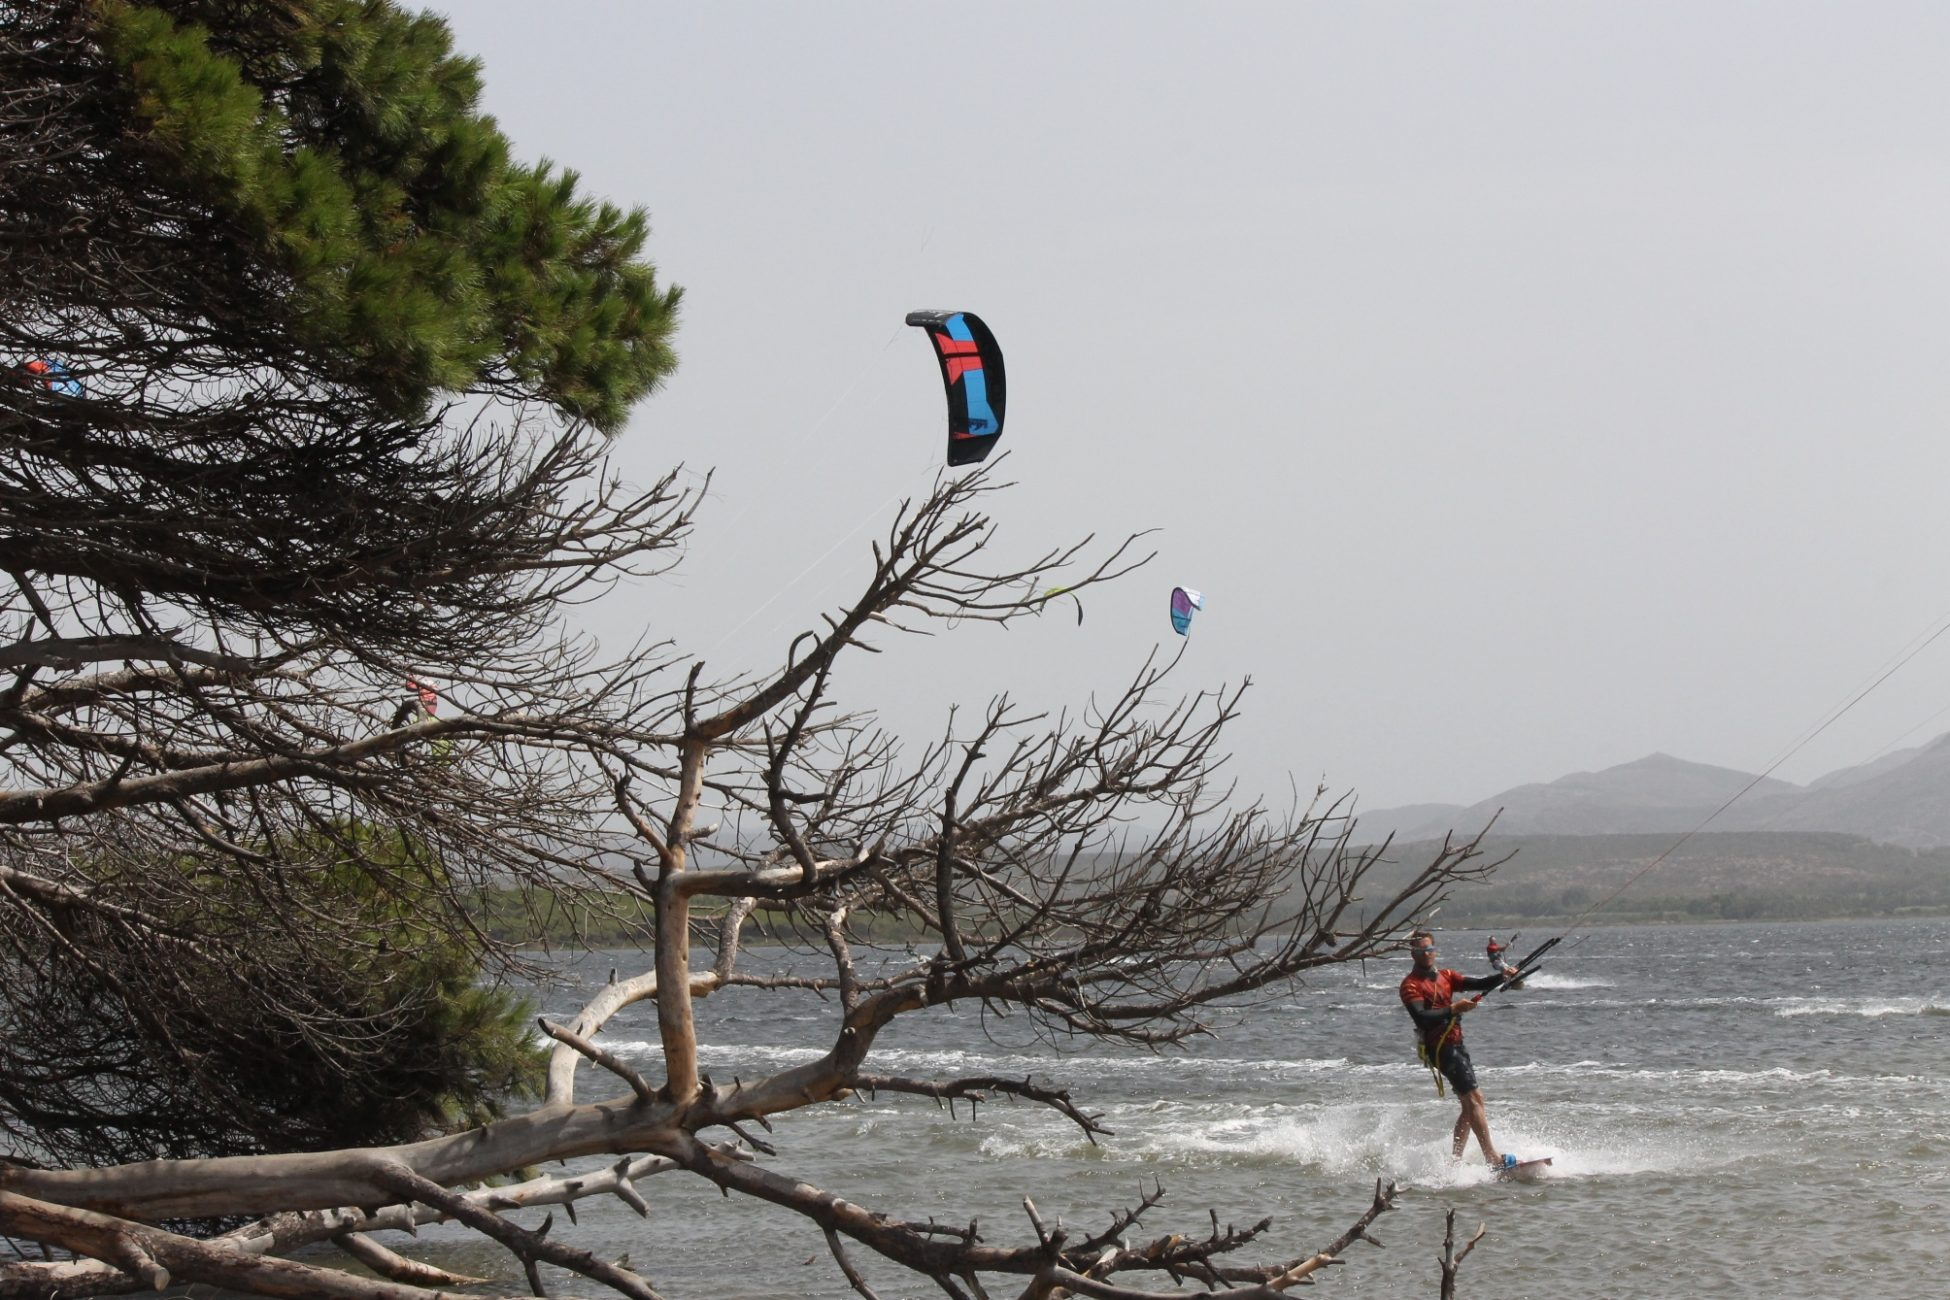 Kitesurf in Punta Trettu, Sardinia: Flat and Shallow water and Steady wind